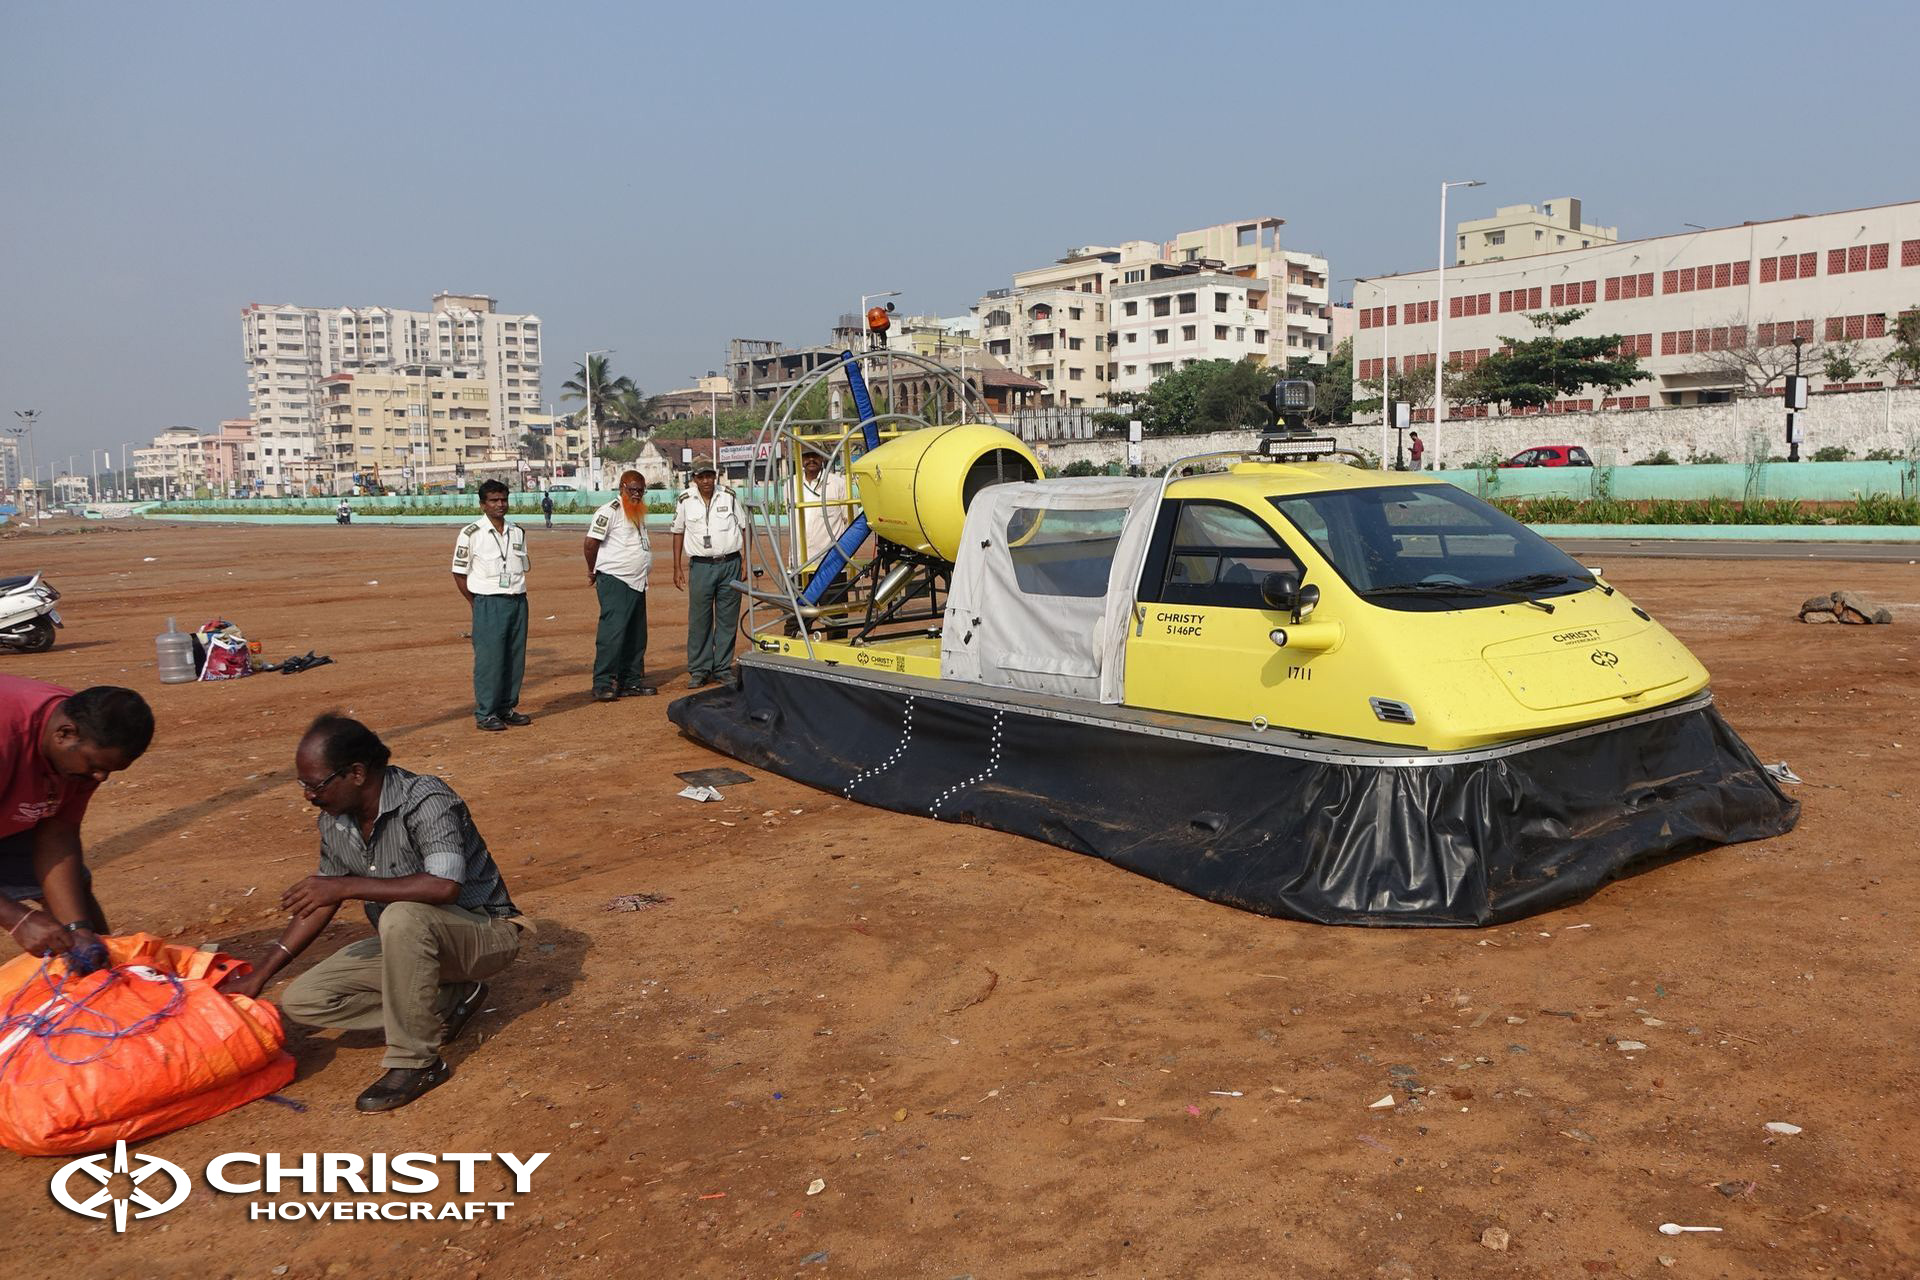 hovercraft-christy-5_7series-03.jpg | фото №34